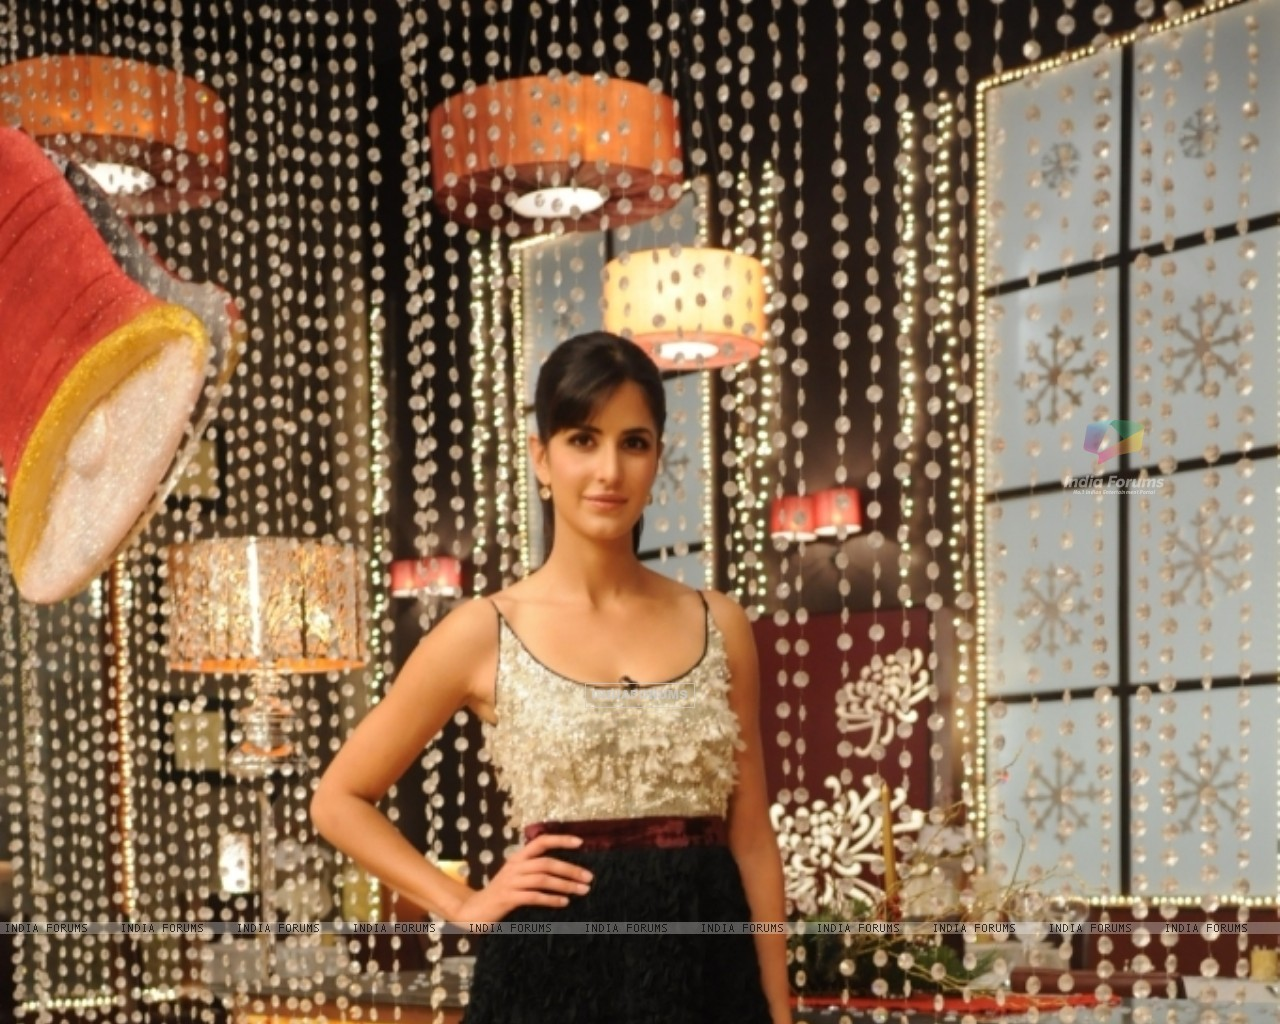 Katrina Kaif at Master Chef India set on Grand Finale (113293) size:1280x1024